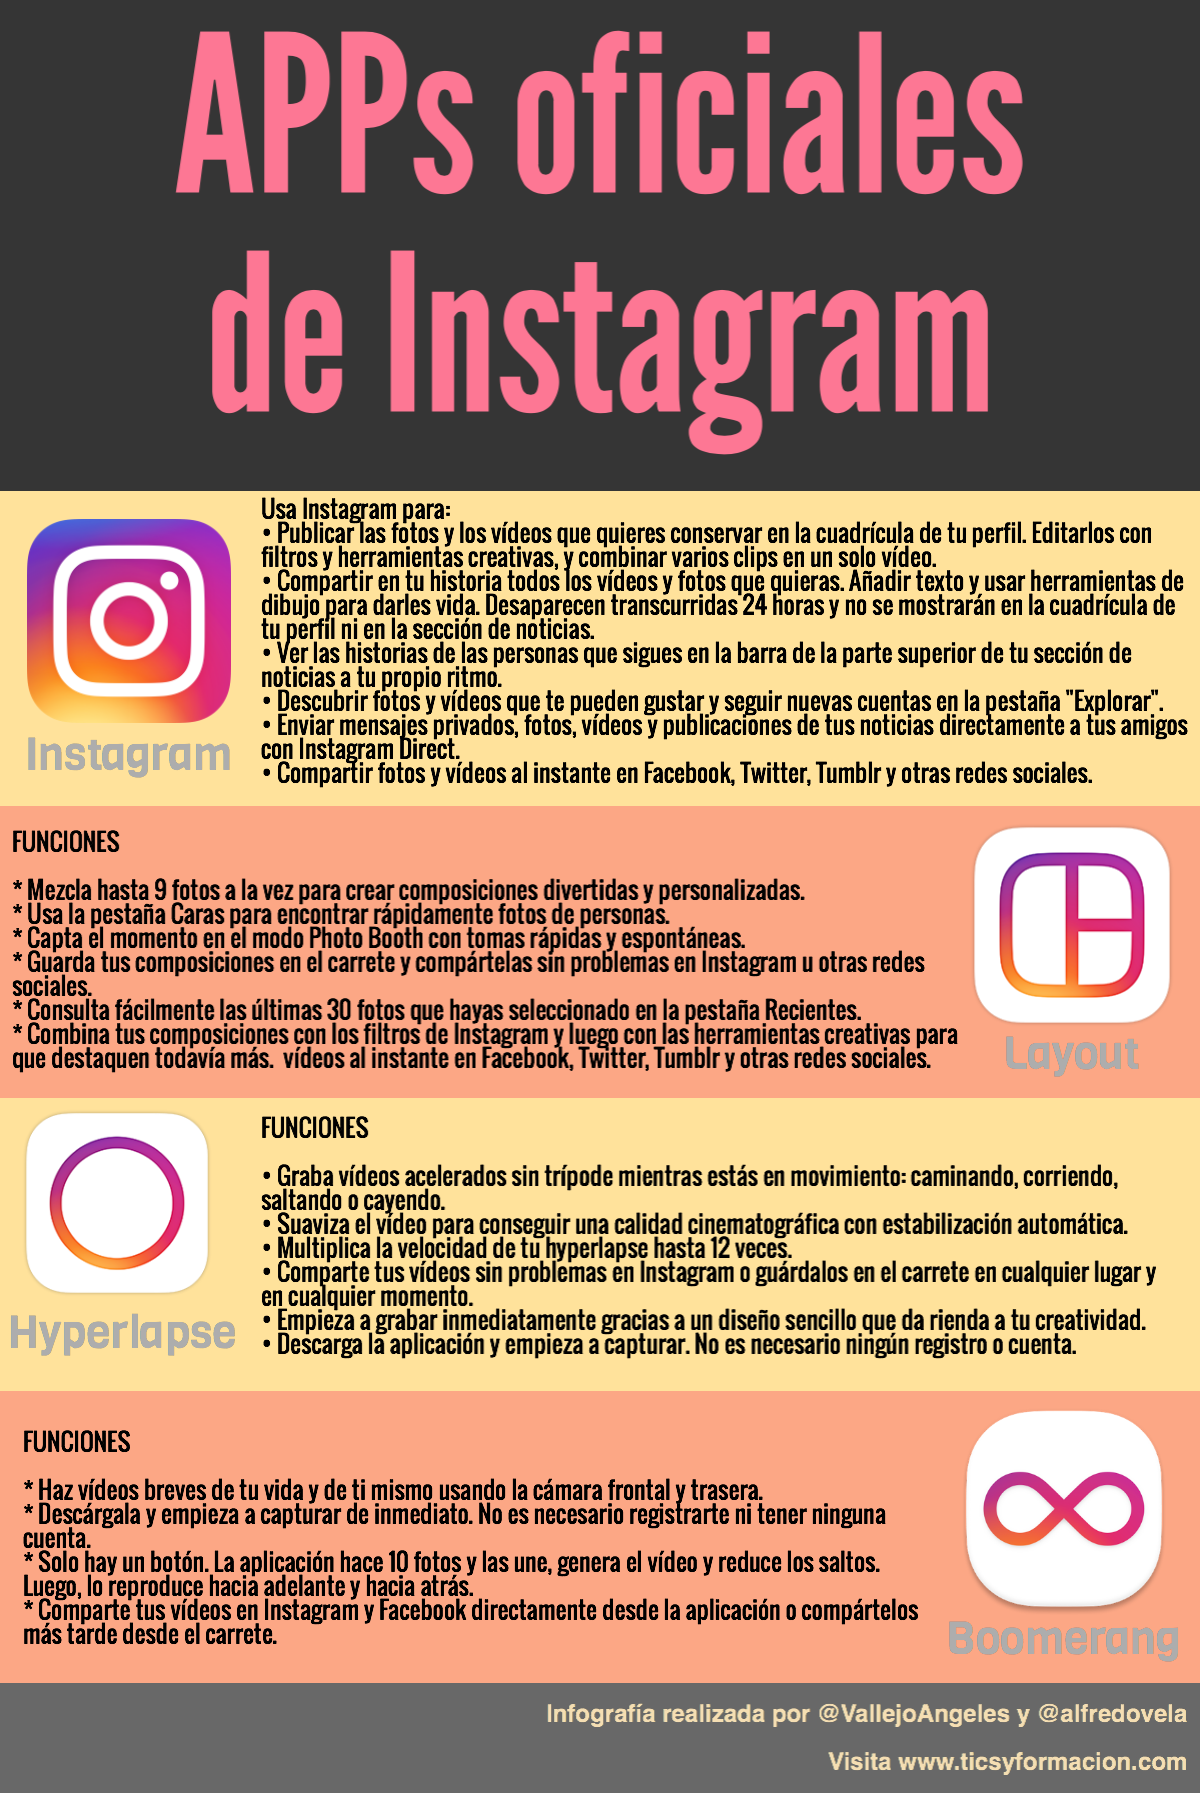 APPs oficiales de Instagram